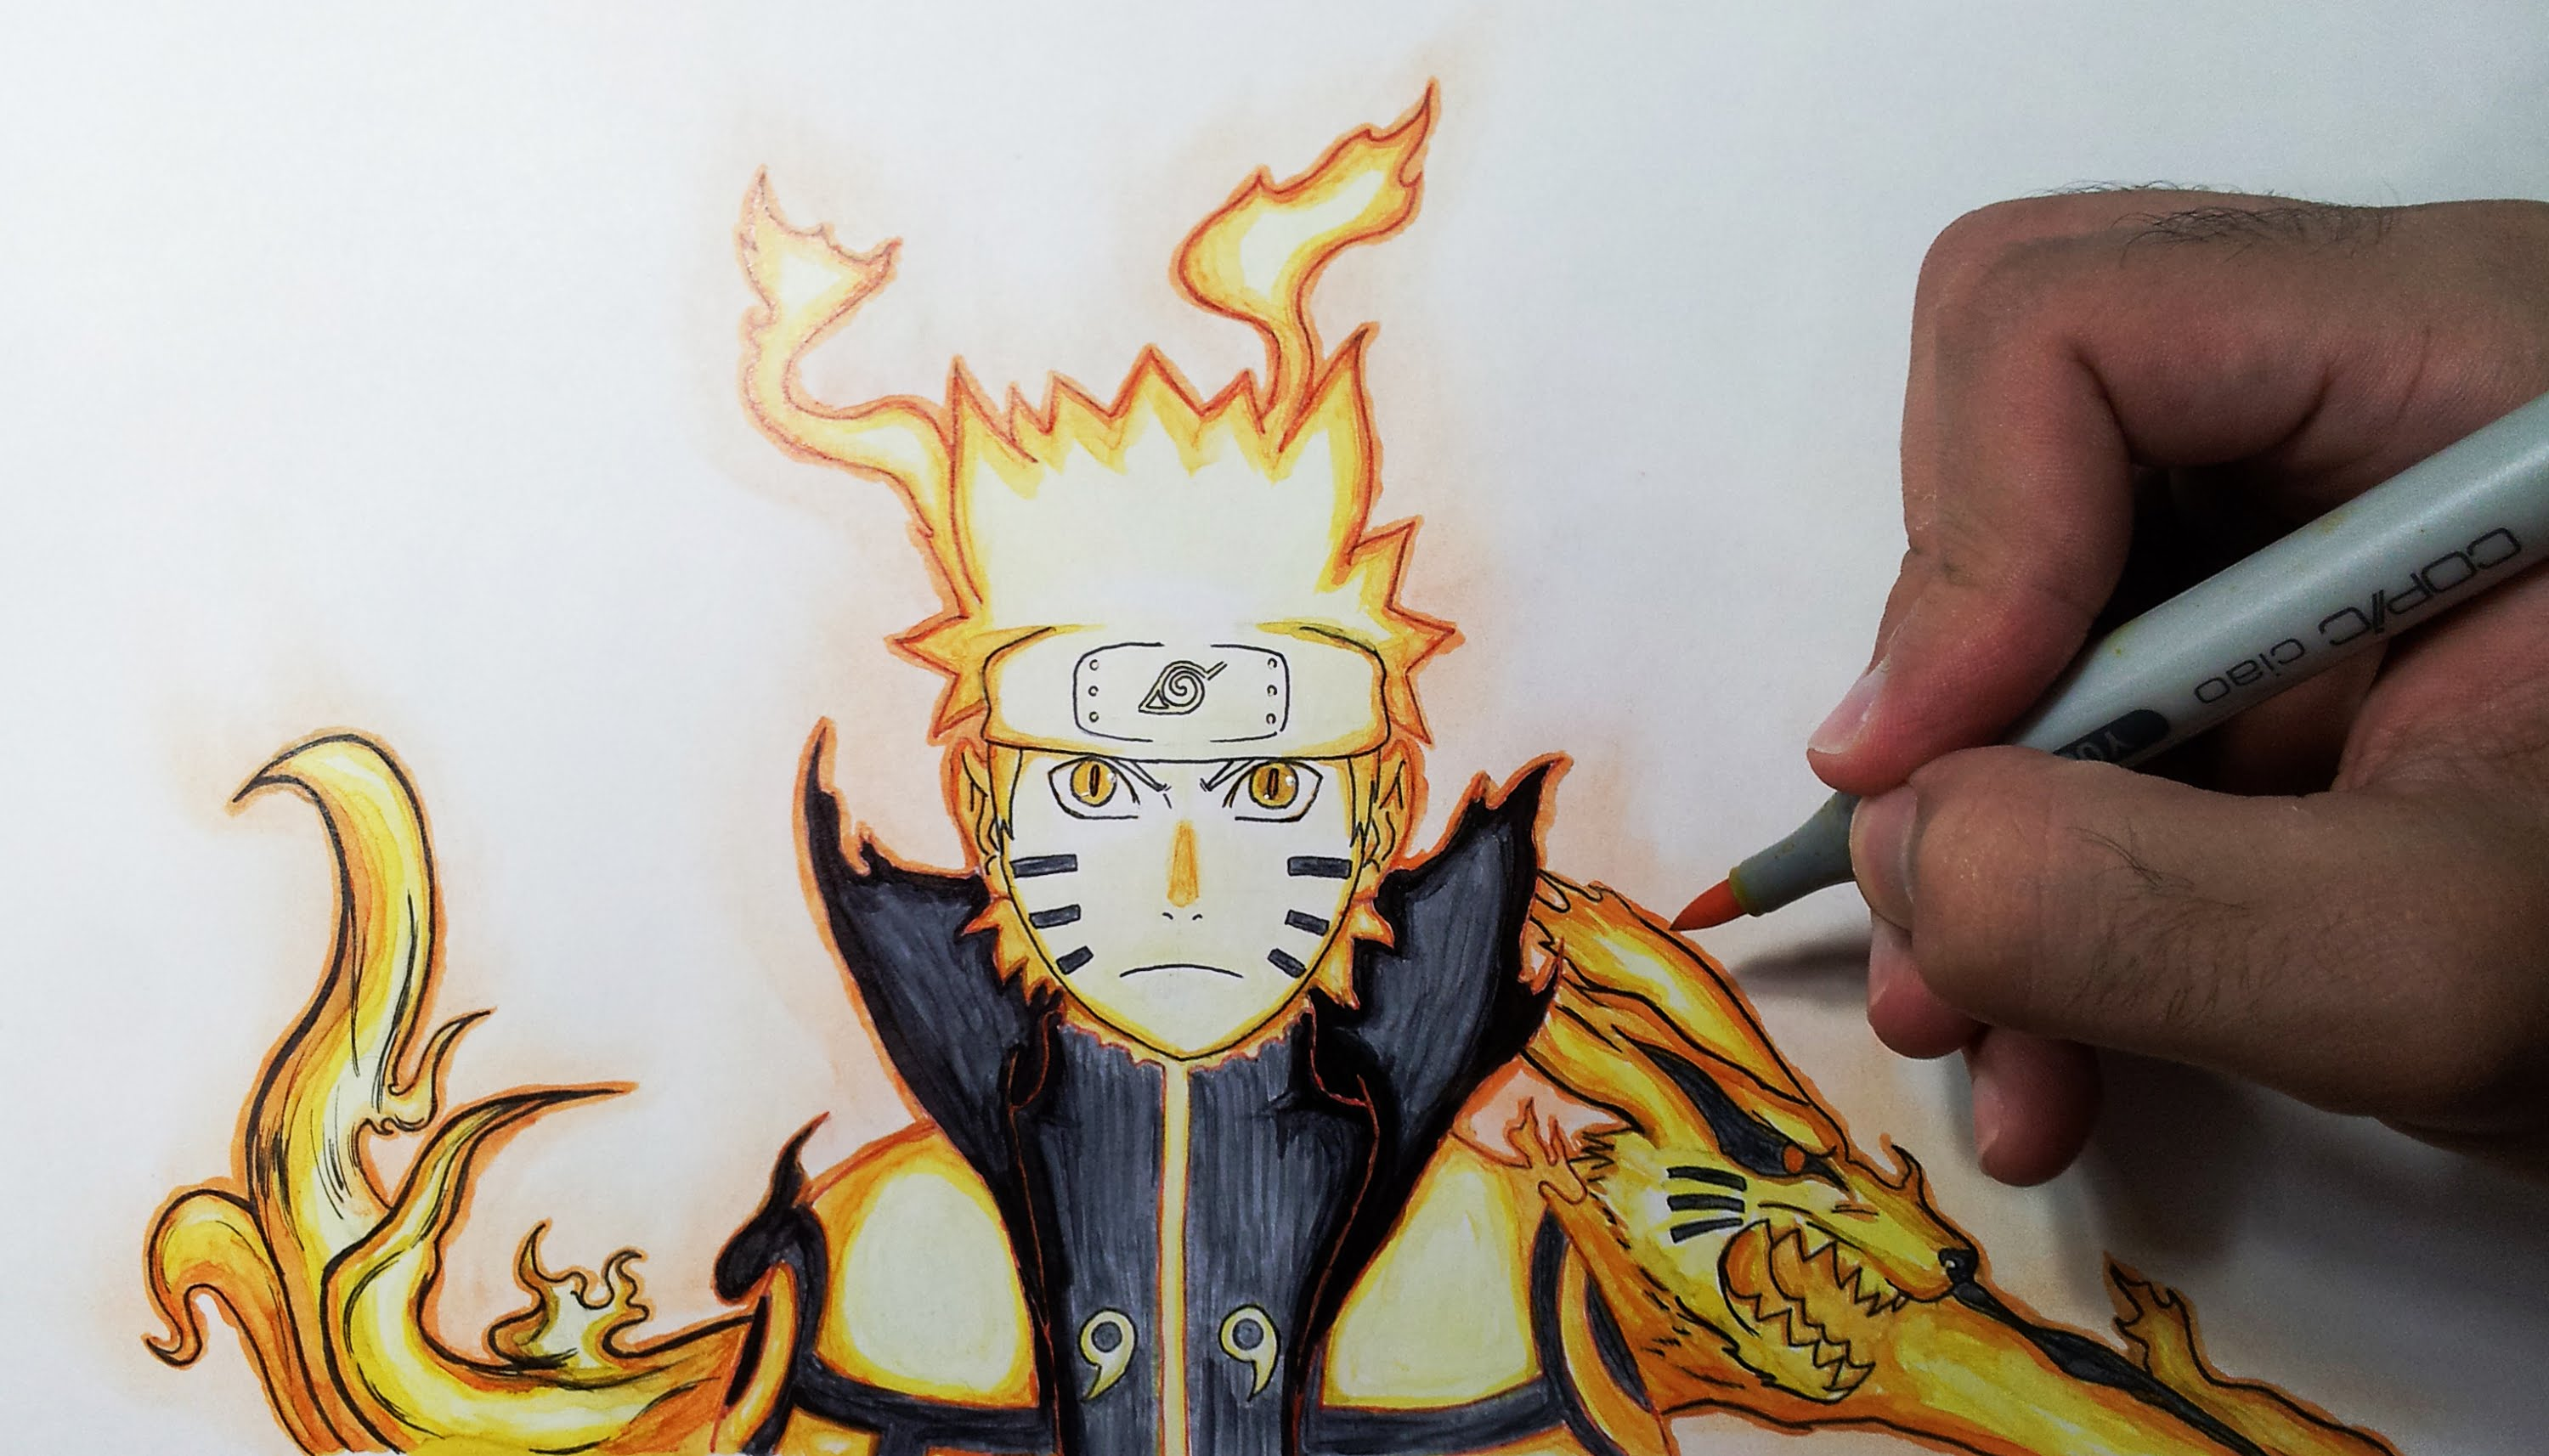 Drawn naruto bijuu YouTube Unsubscribe Bijuu Drawing Naruto